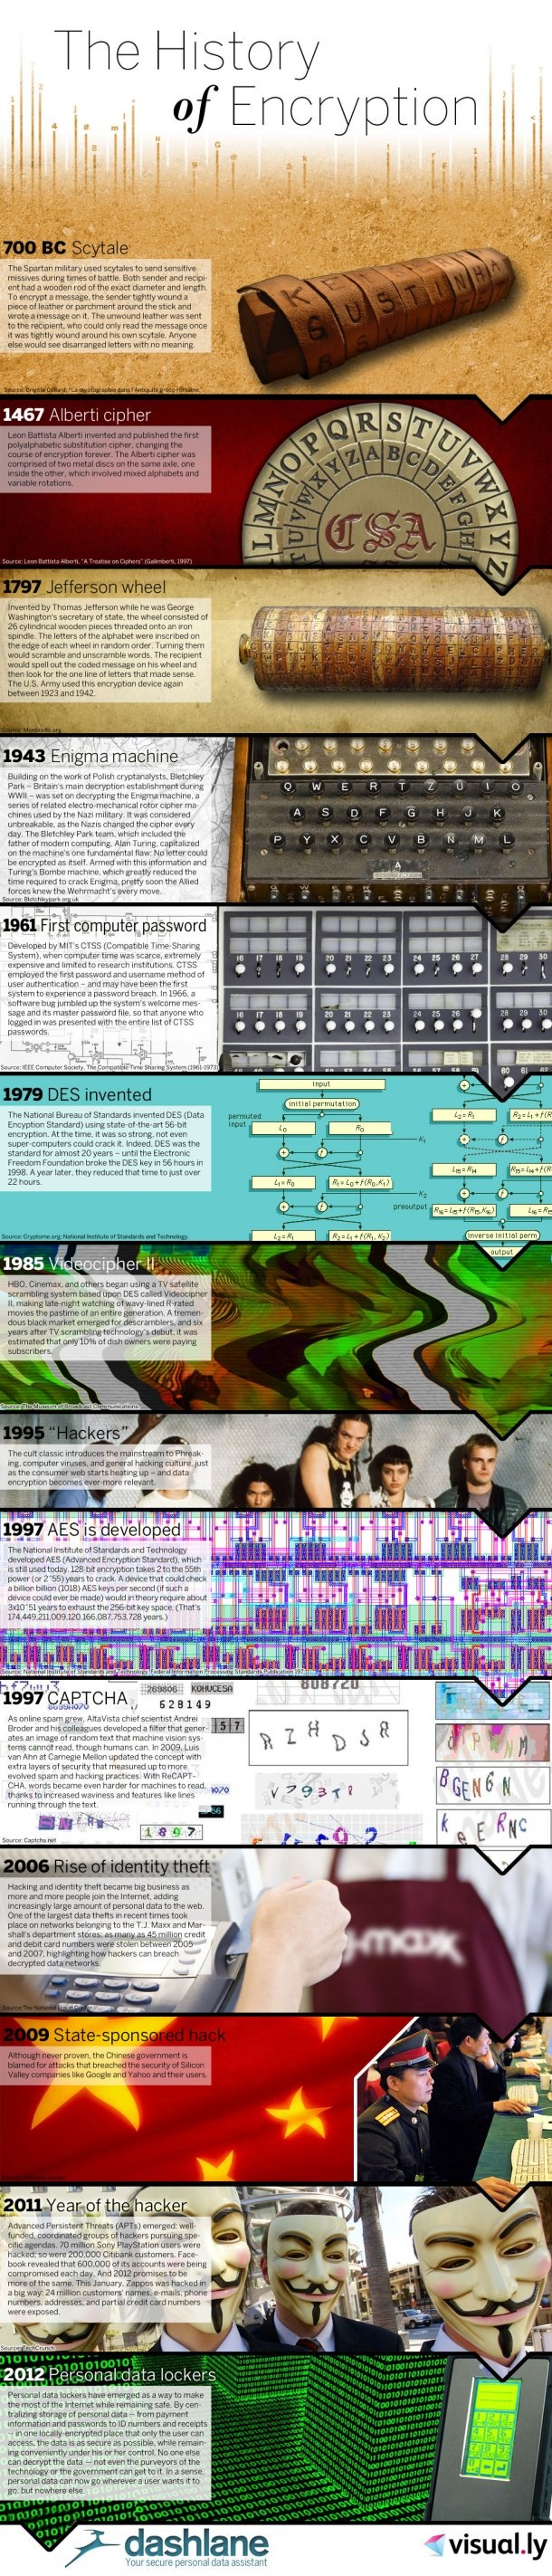 The History of Encryption [INFOGRAPHIC]